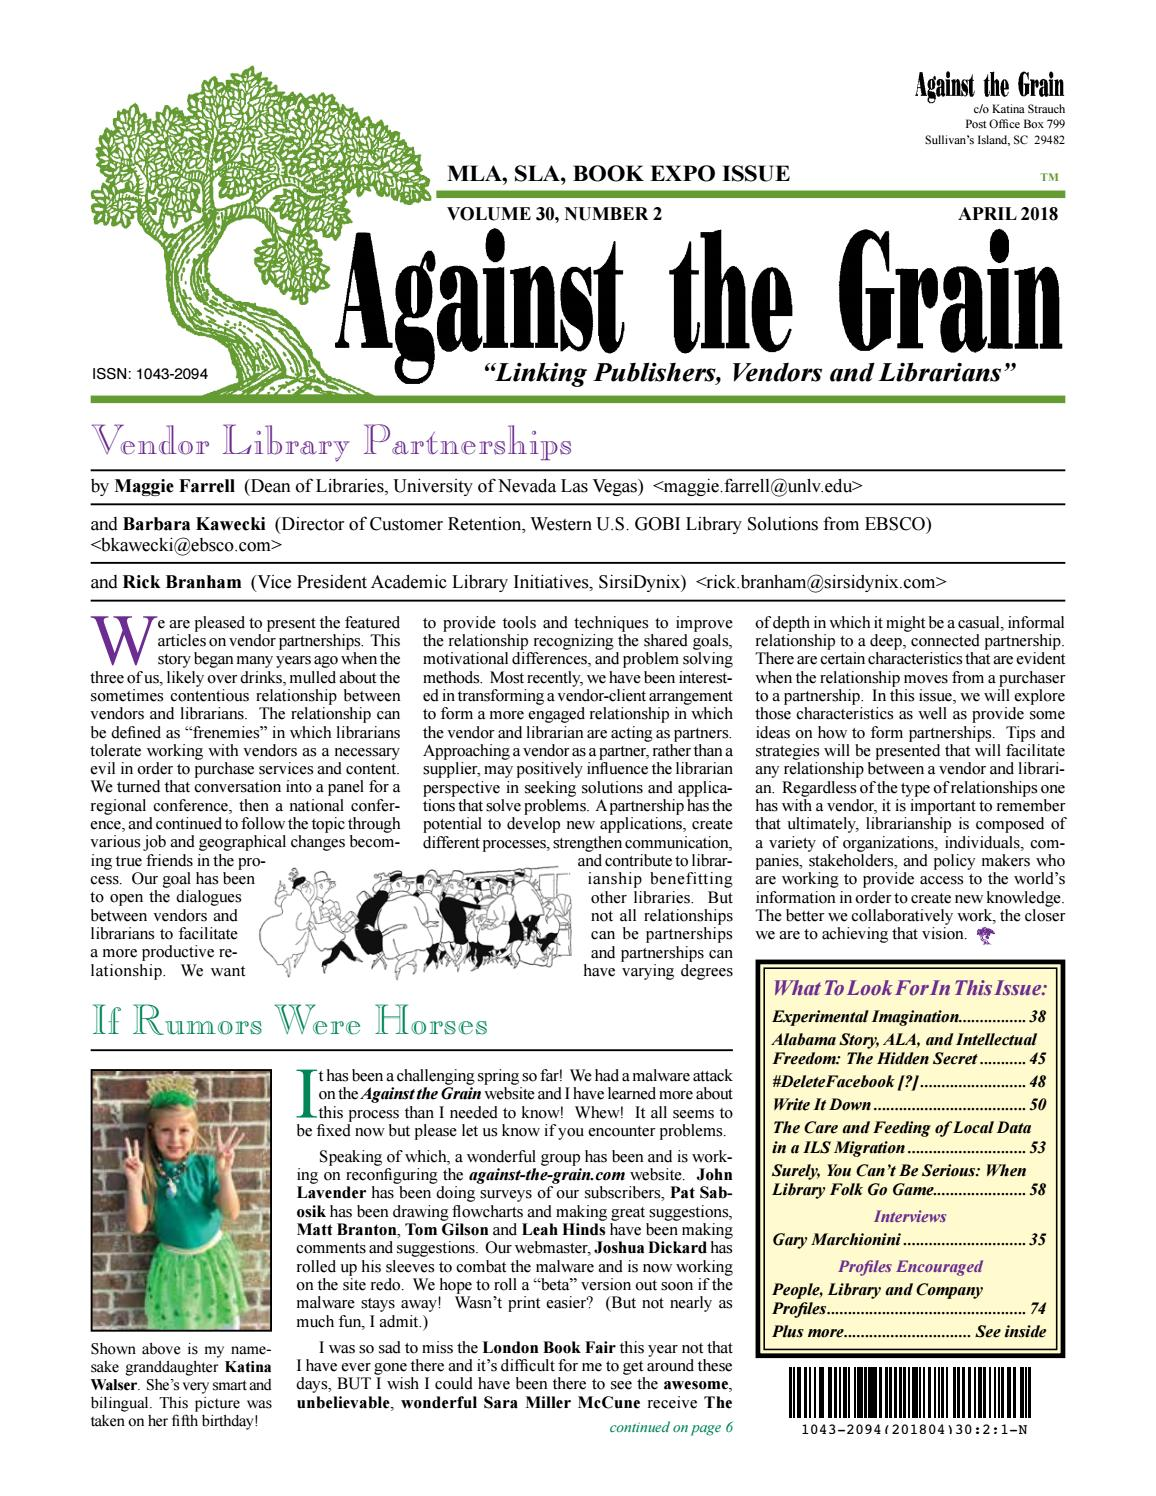 Against the grain v 30 2 april 2018 by against the grain issuu fandeluxe Image collections